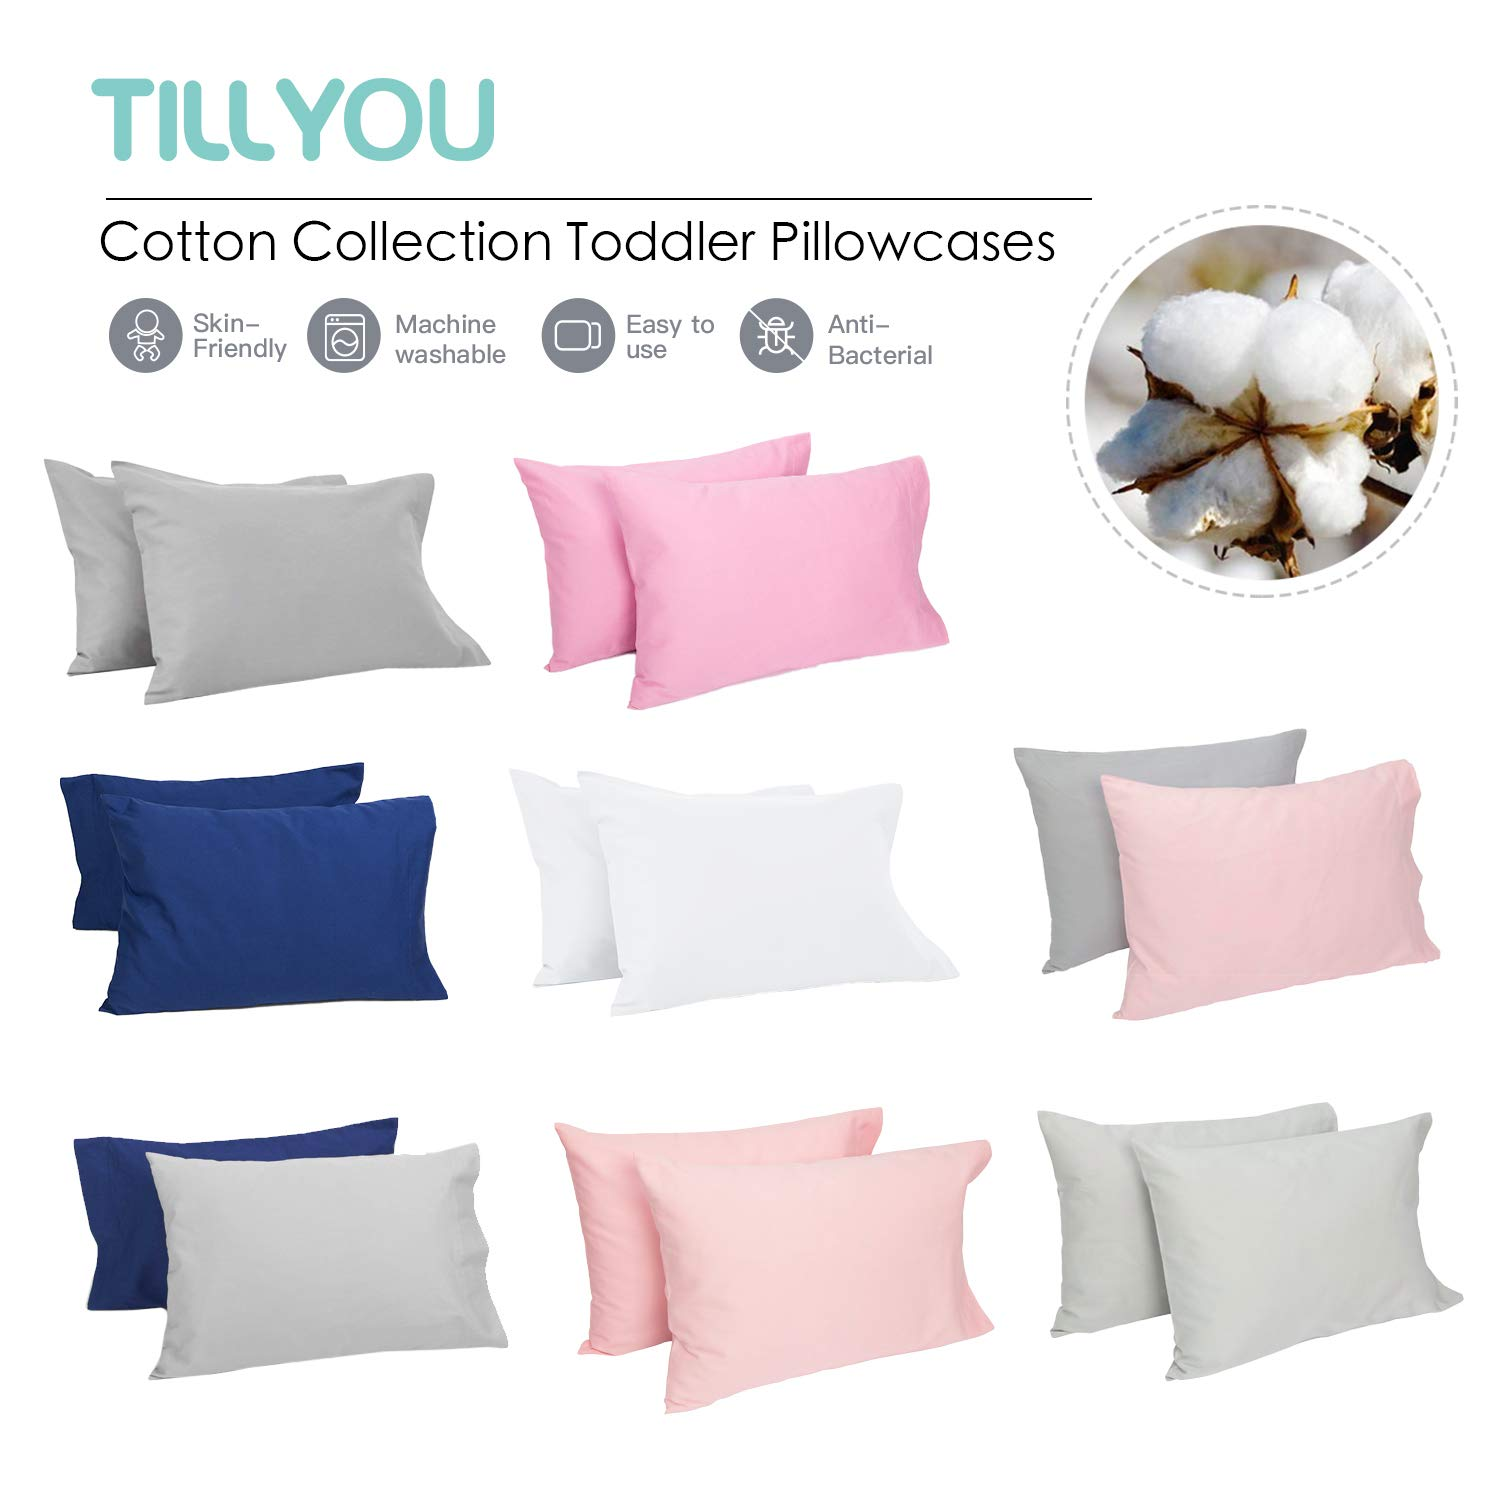 13x18 or 14x19 Machine Washable Travel Pillow Case Cover with Envelope Closure Fits Pillows Sized 12x16 14x20 Pale Gray TILLYOU Cotton Collection Soft Toddler Pillowcases Set of 2